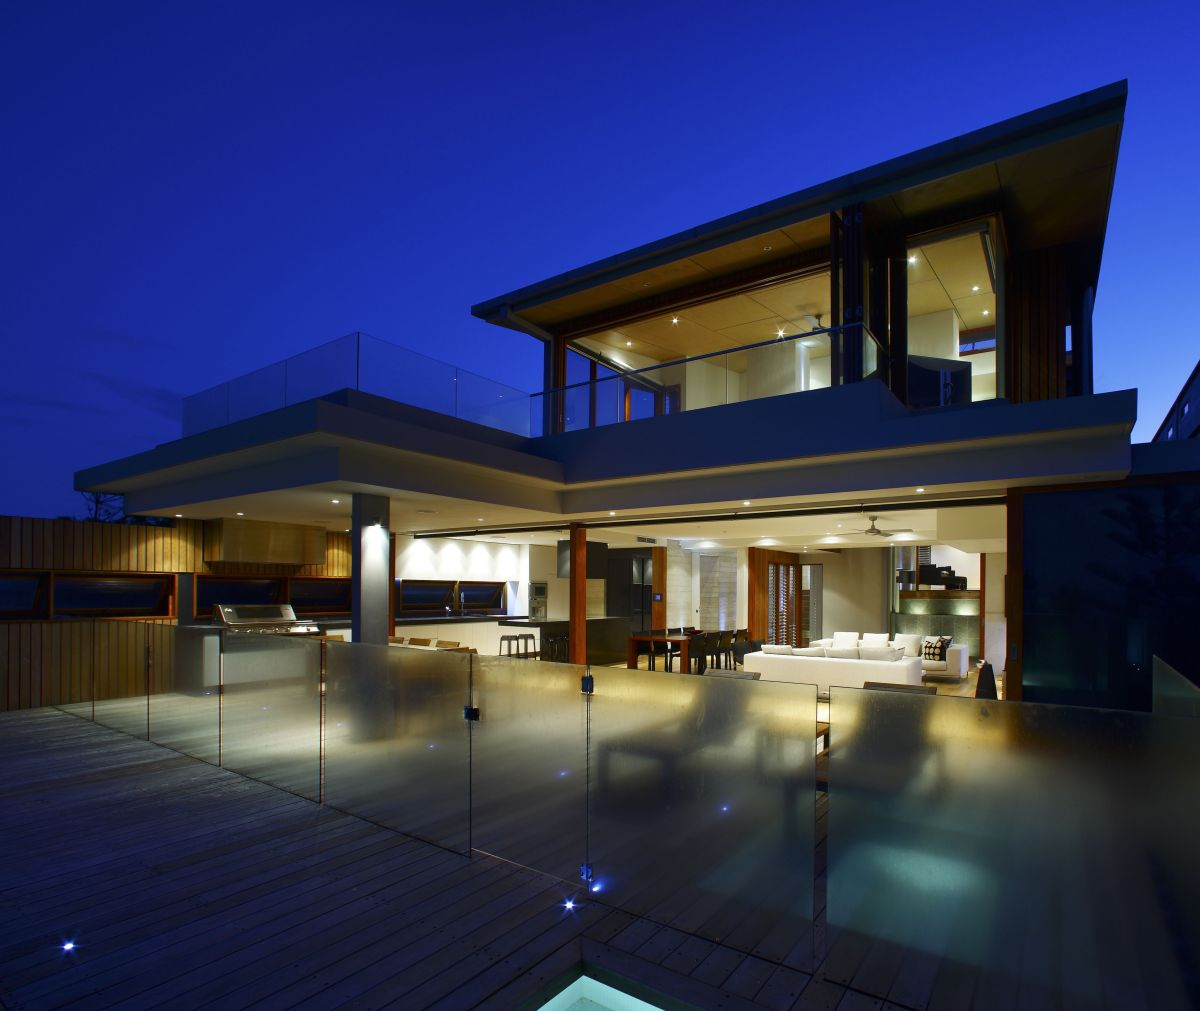 Contemporary Australian Home Architecture On Yarra River: Contemporary Beach Front Residence By Middap Ditchfield